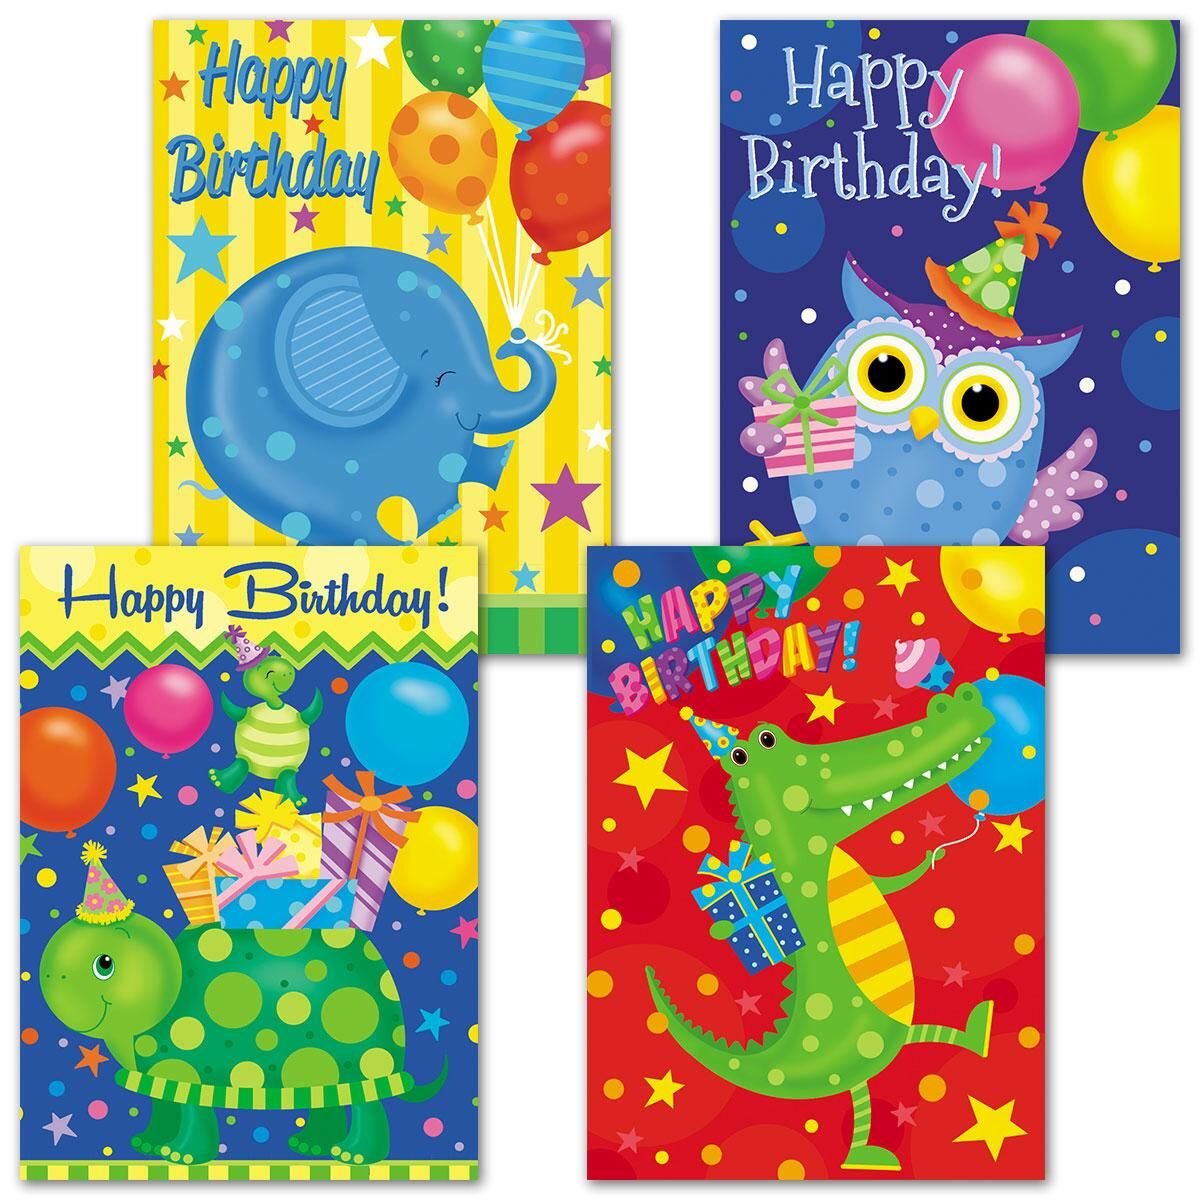 Bright Celebration Birthday Cards